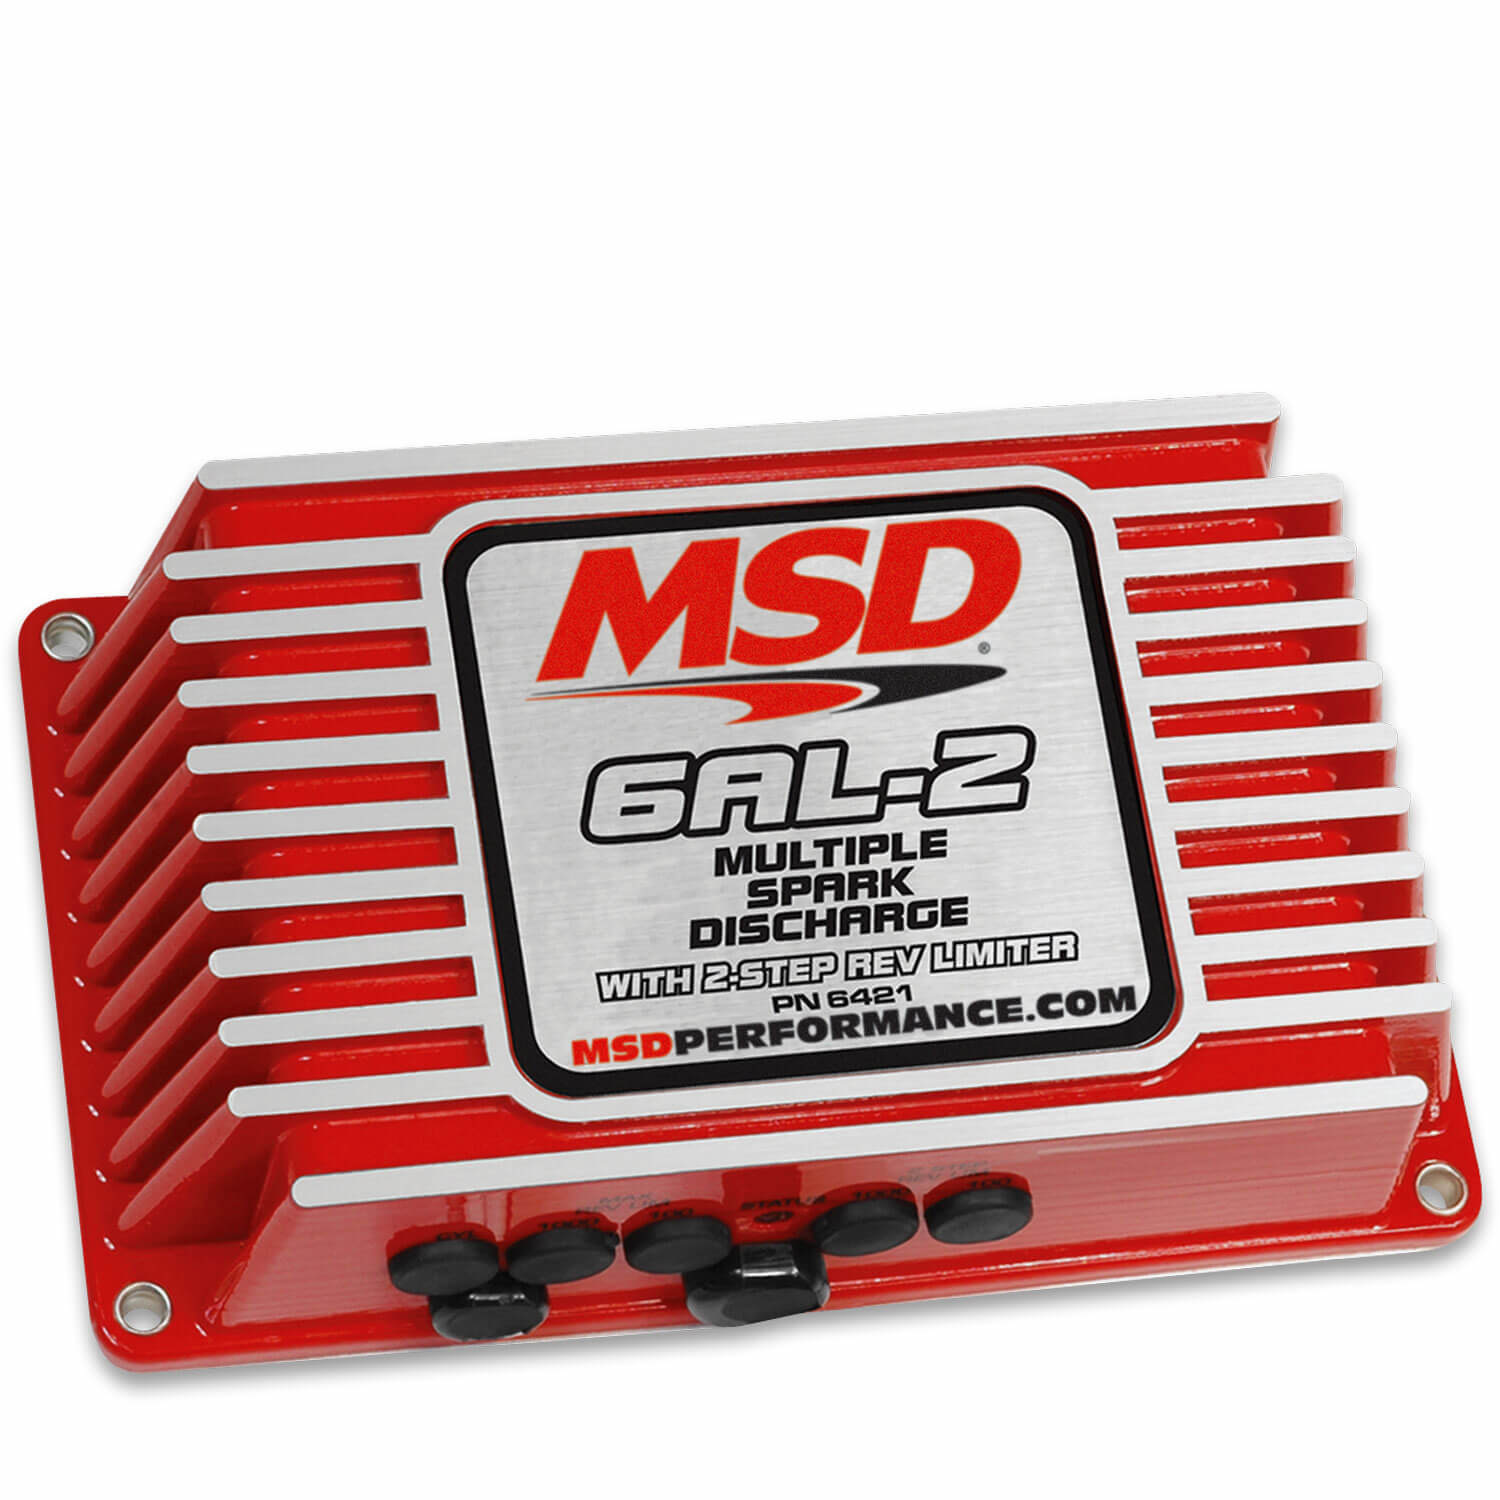 MSD Ignition 6421 Ignitions | Ignitionproducts eu